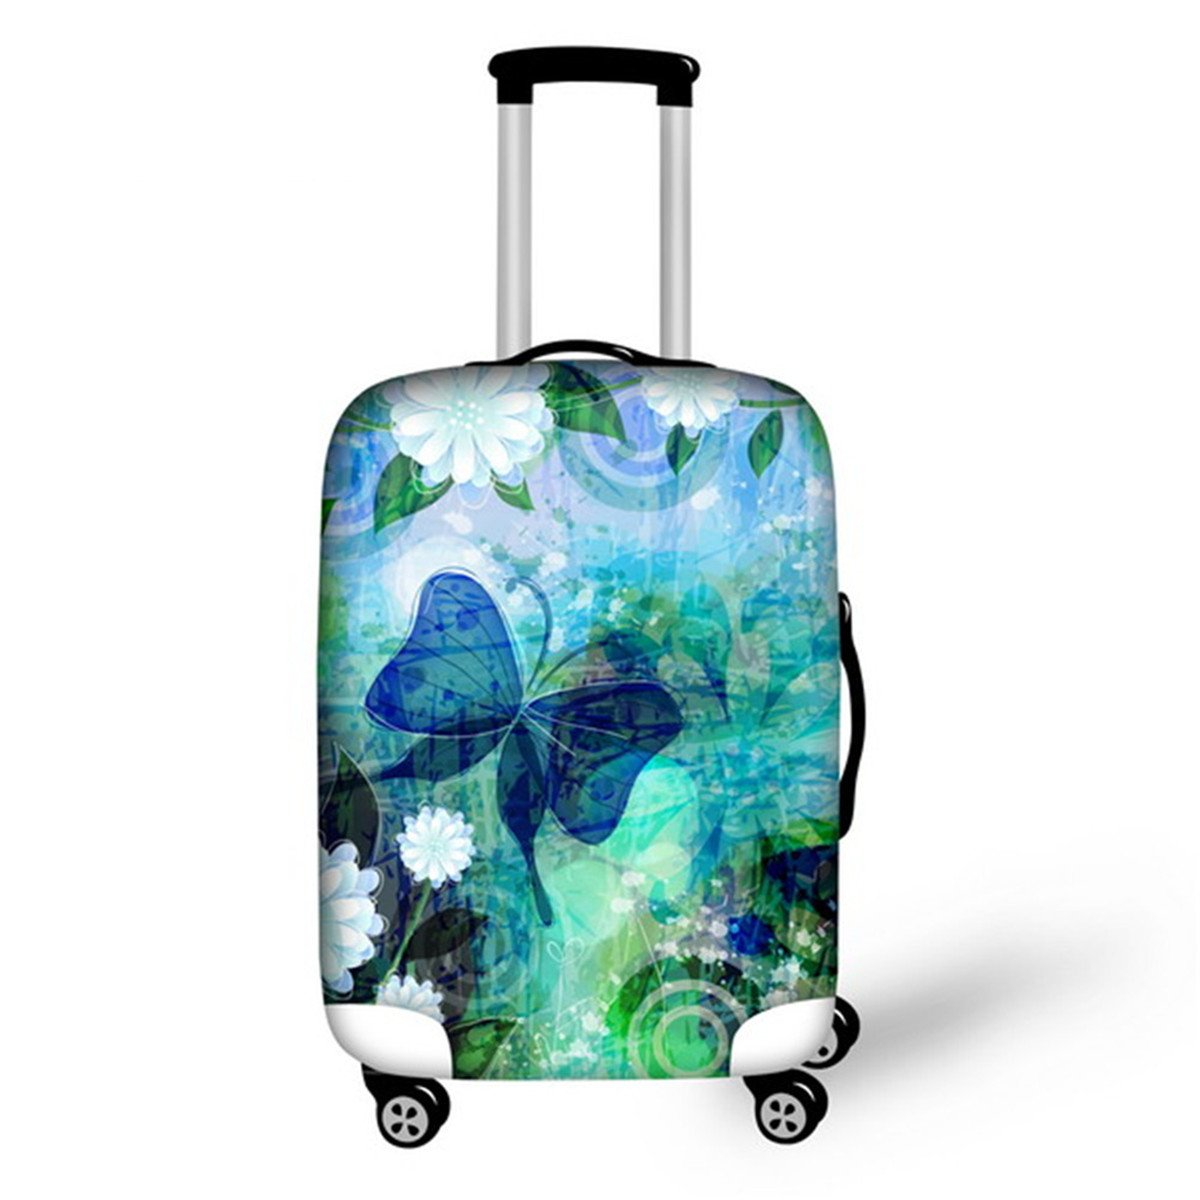 Advocator 3D Butterfly Luggage Cover Protector Spandex Suitcase Cover for Travel